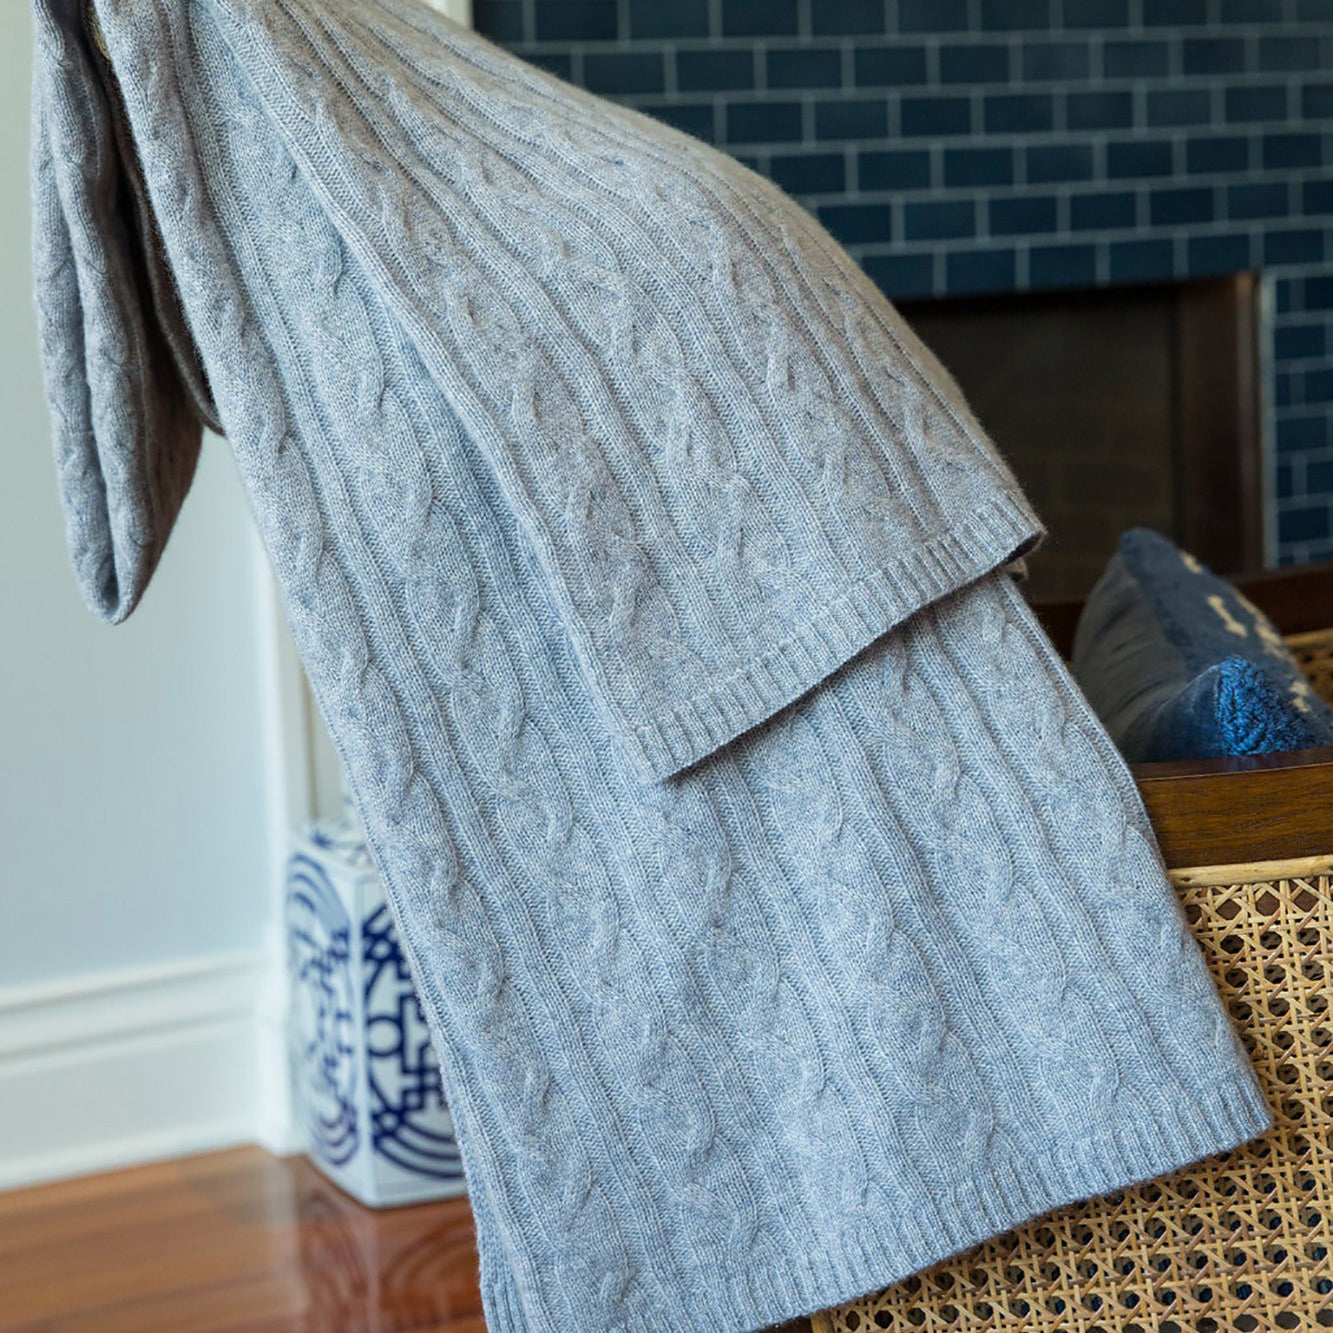 Alashan 100% Cashmere Cable Rope Stitch Knit Throw - Shade